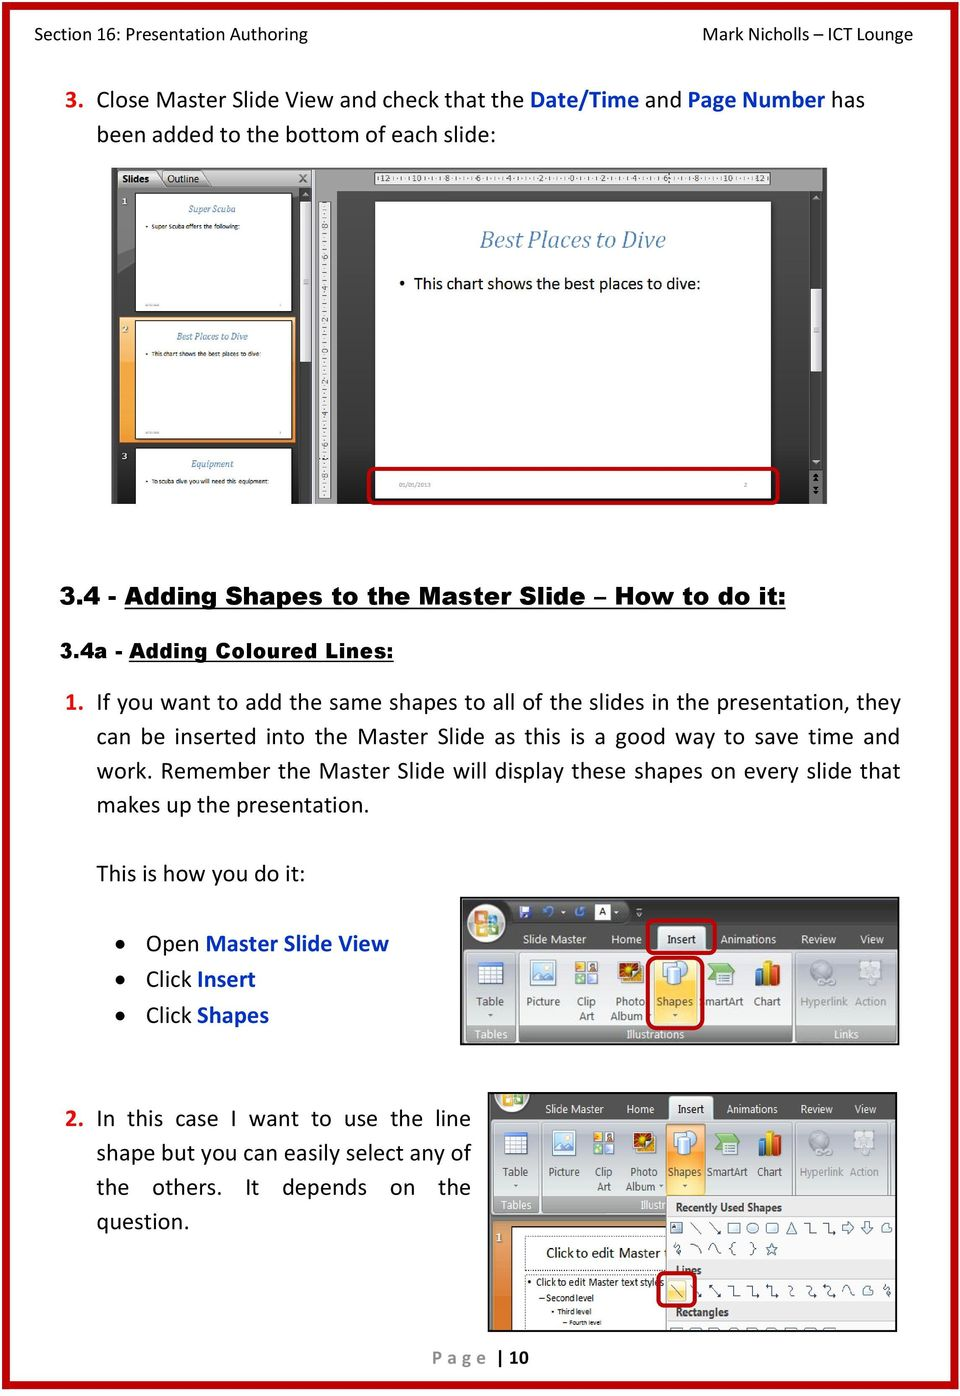 If you want to add the same shapes to all of the slides in the presentation, they can be inserted into the Master Slide as this is a good way to save time and work.